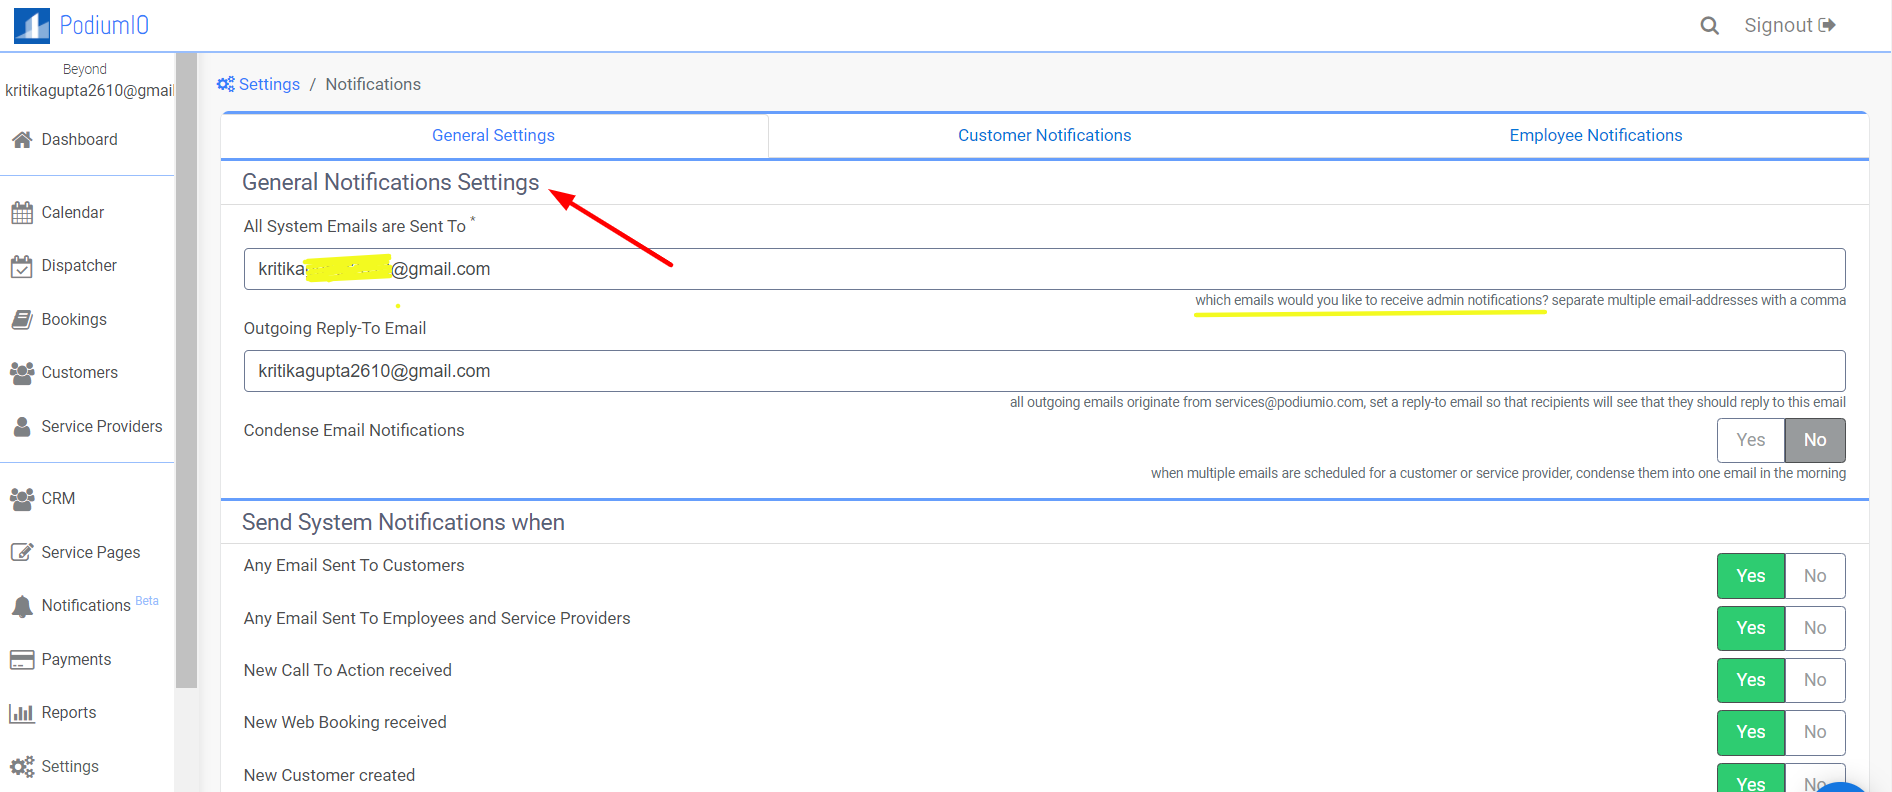 Edit email where you would like to be notified under settings > notifications > general notification